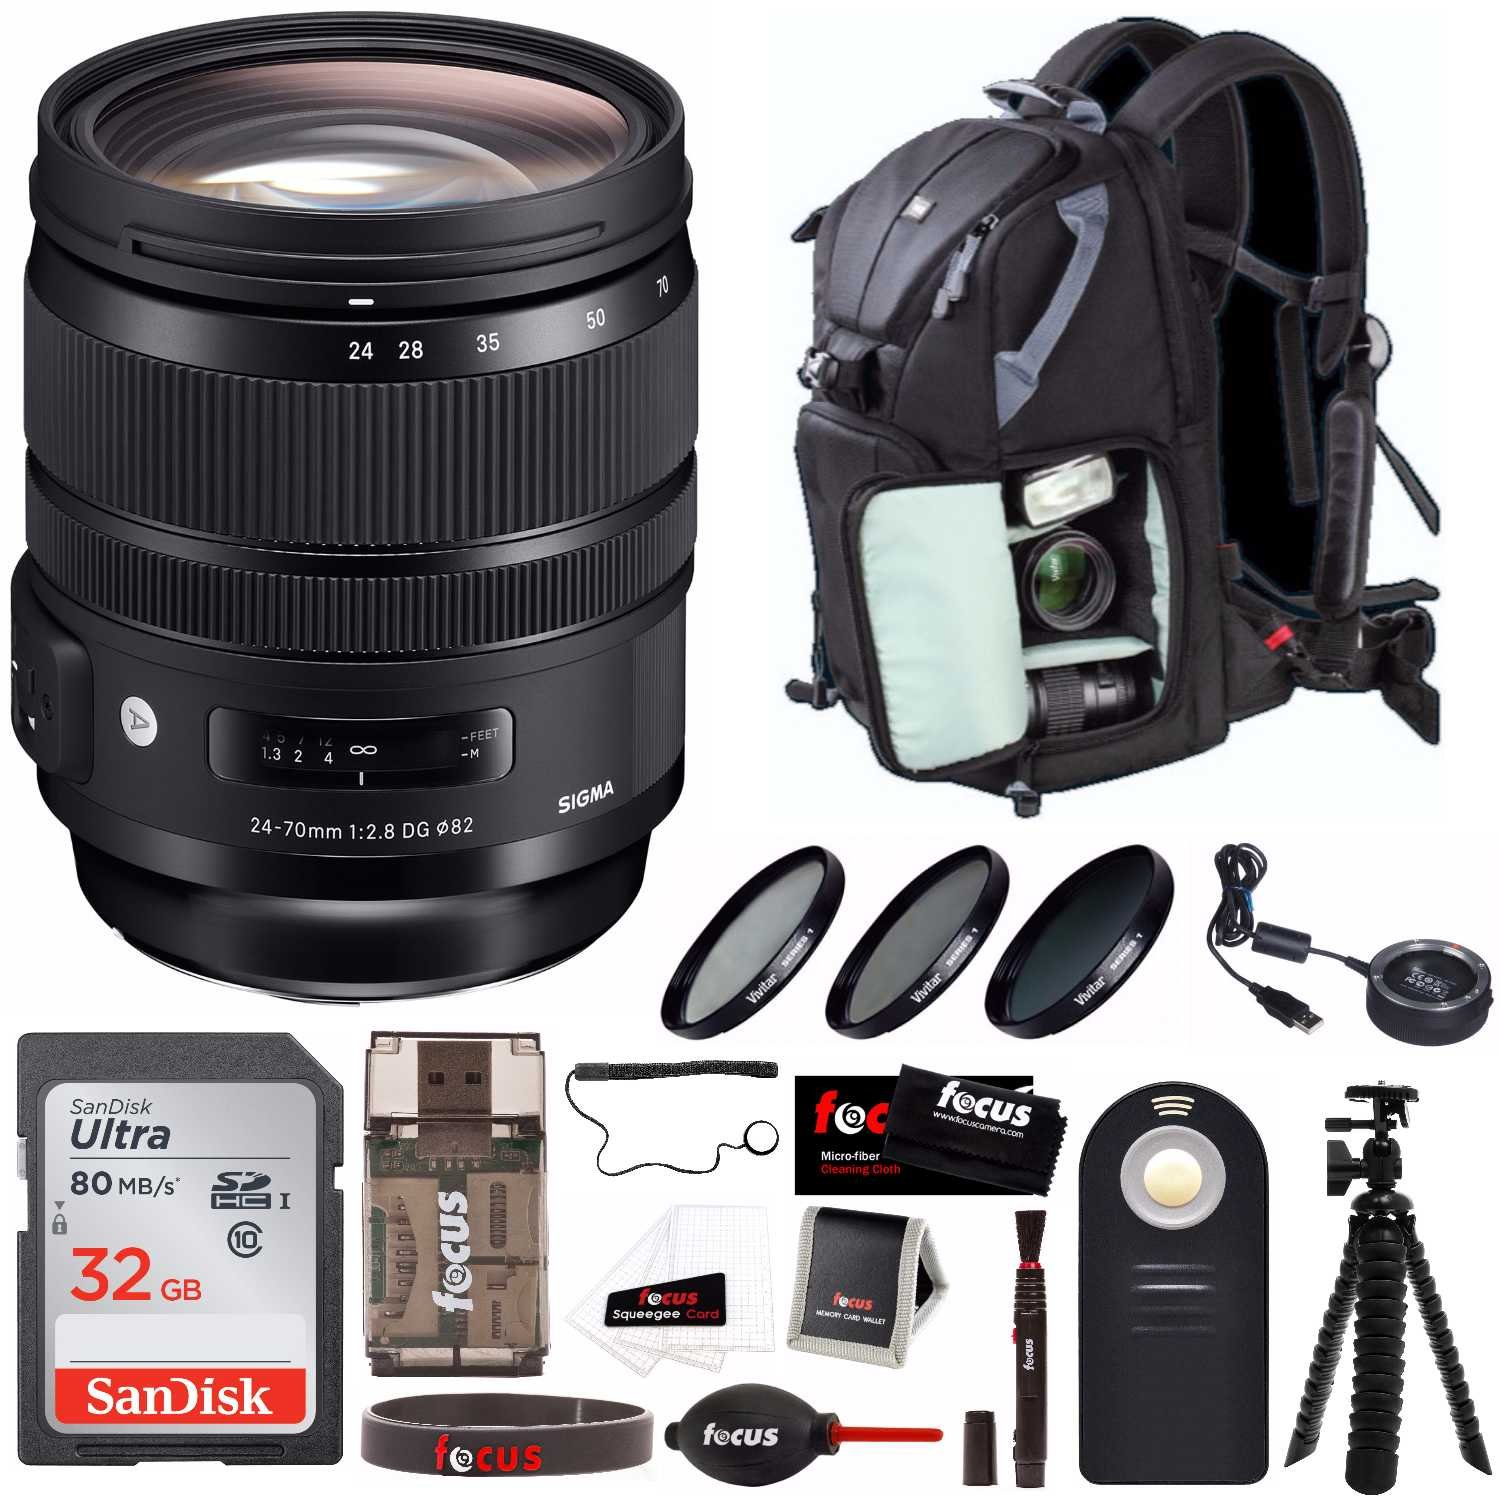 Sigma 24-70mm f/2.8 DG OS HSM Art Lens with Sigma USB Dock and Advanced Photo and Travel Bundle (For Canon)